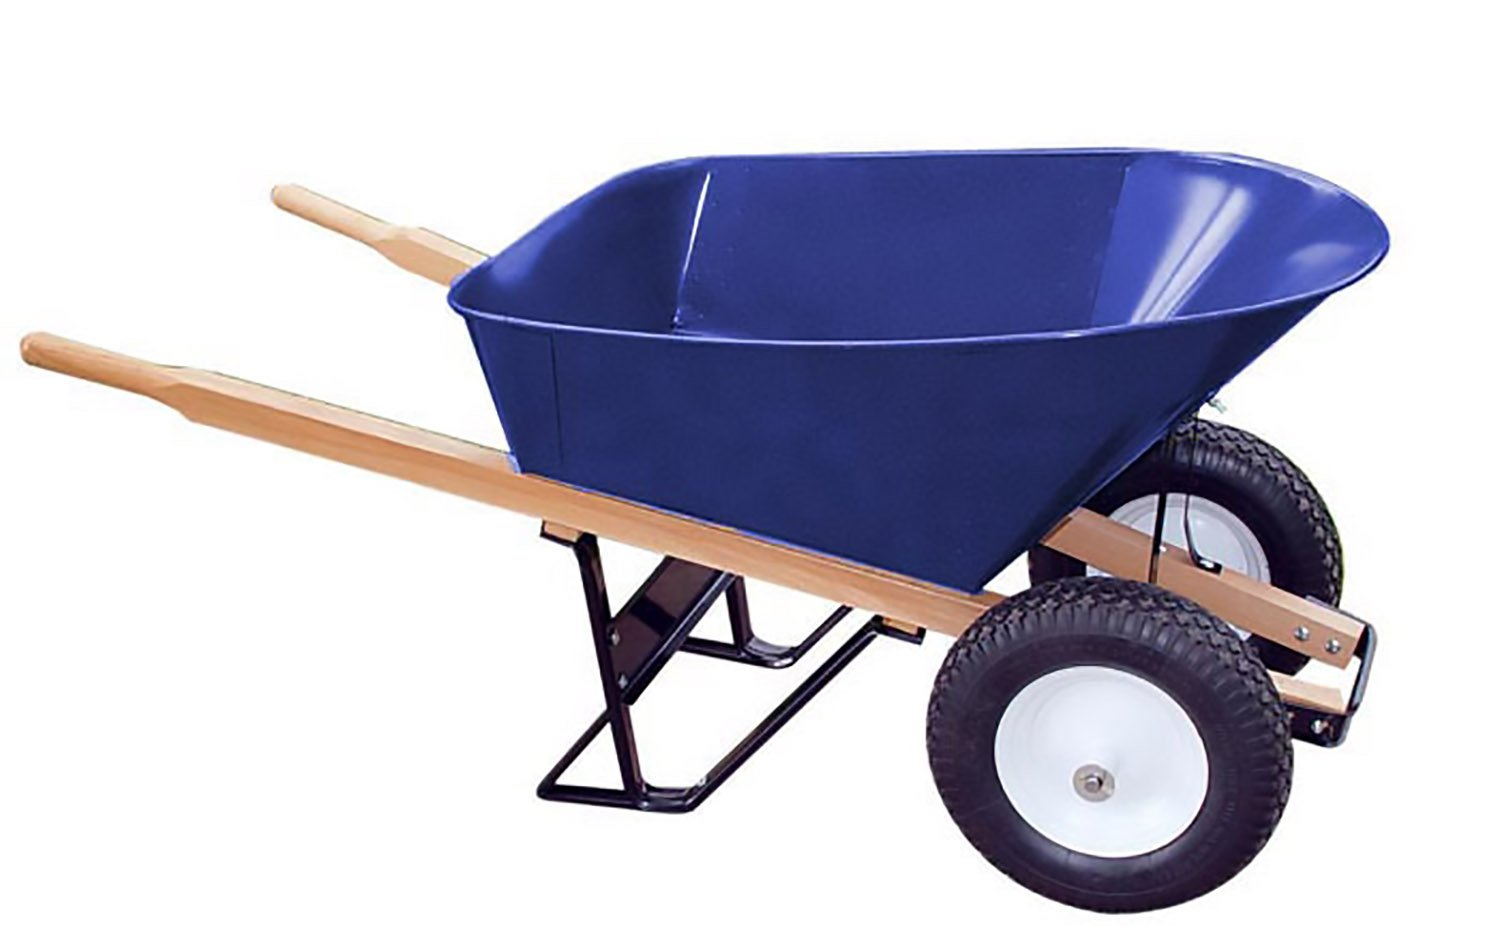 Bon 28 703 Premium Contractor Grade Steel Double Wheel Wheelbarrow with Wood Handle and Ribbed Tire, 6 Cubic Feet